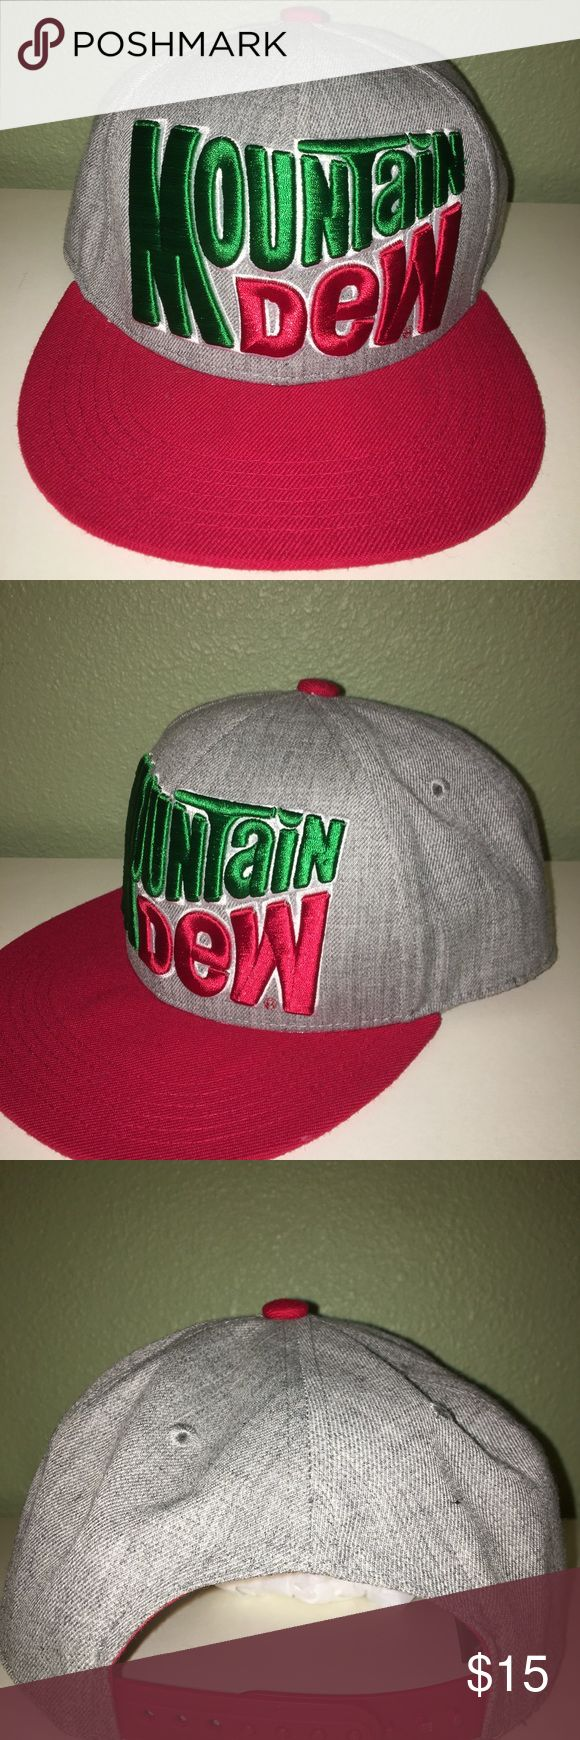 "NWOT MOUNTAIN DEW baseball cap BRAND NEW WITHOUT TAGS MOUNTAIN DEW baseball cap with adjustable back. The cap is gray and the bill all read. It reads (in thick stitching)  ""MOUNTAIN DEW"" in its original and classic form.  THIS HAT HAS NEVER BEEN WORN. MOUNTAIN DEW Accessories Hats"